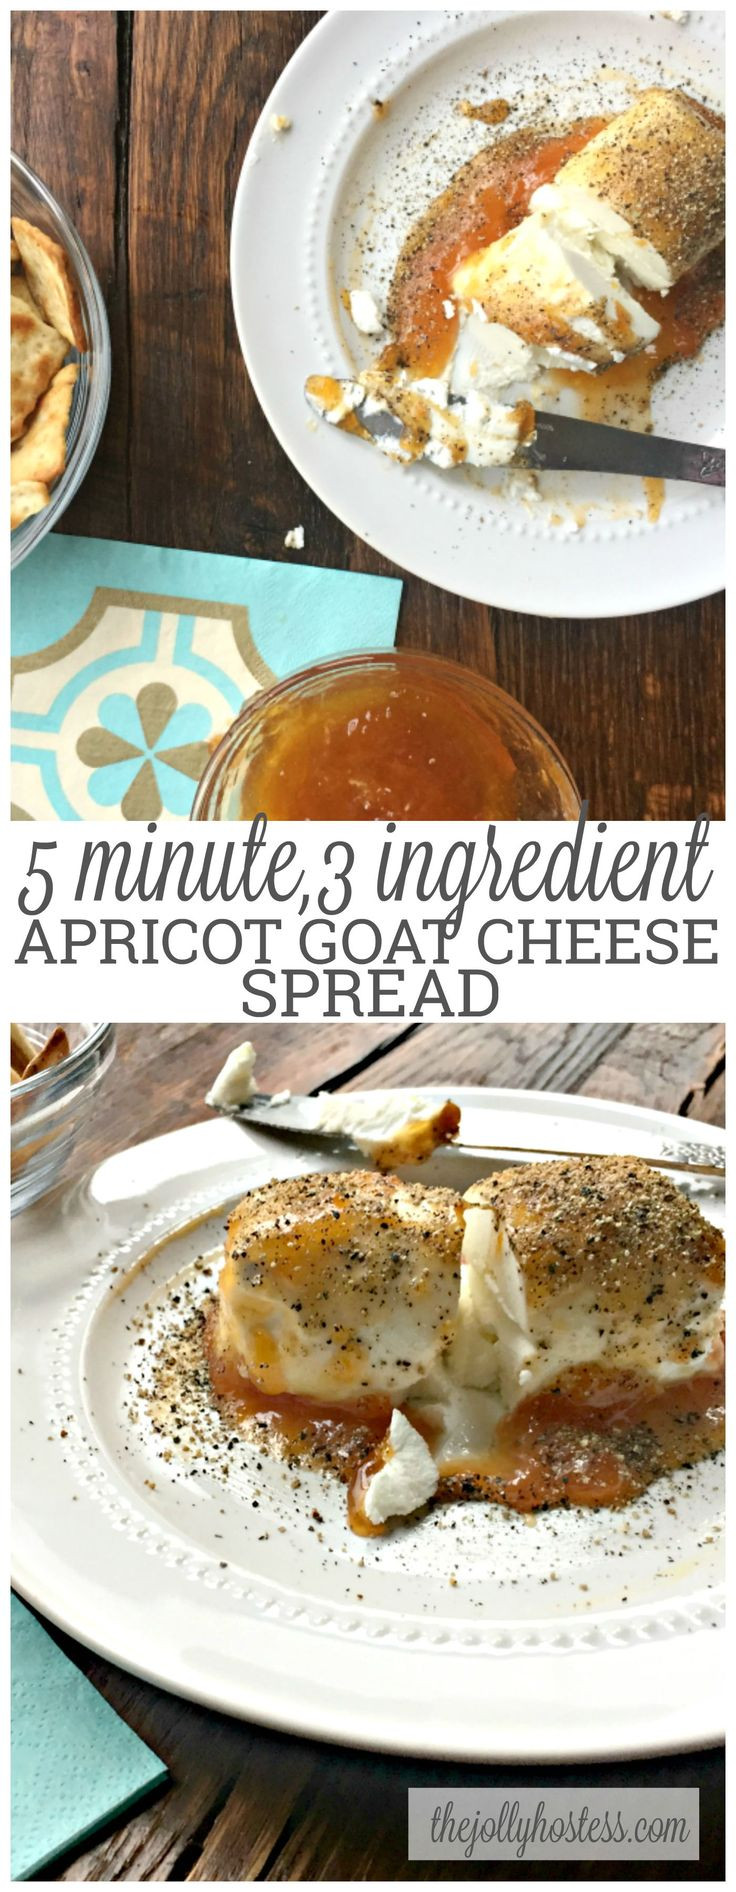 Goat cheese apricot spread | recipes | recipe | appetizers | apps | party food | parties | for a crowd | finger food | snacks | | chip and dip | low ingredient | easy | the easiest | quick | simple | make ahead | cheese boards | charcuterie | cheese | fruit |